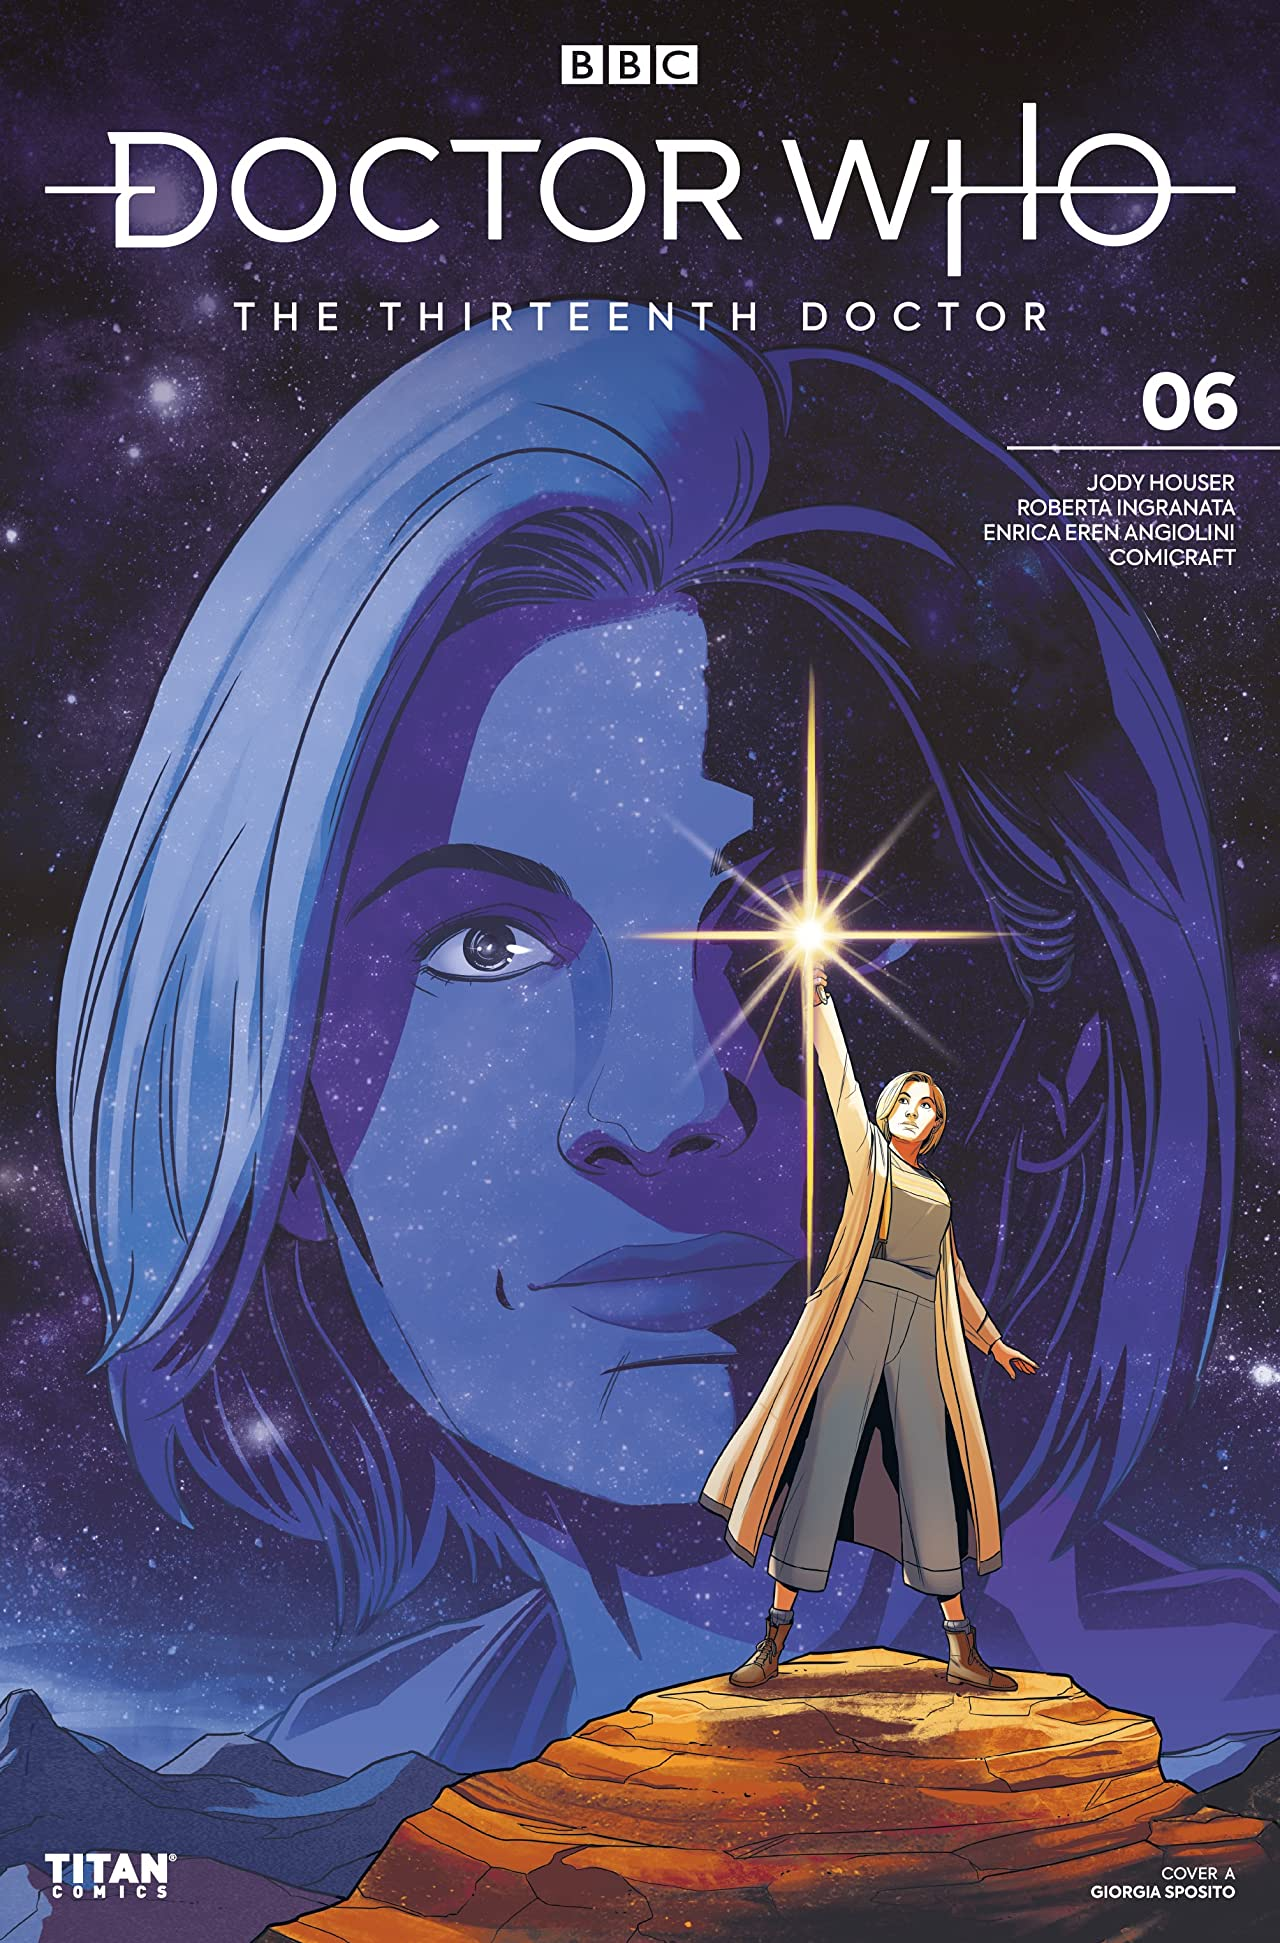 Doctor Who: The Thirteenth Doctor No.6